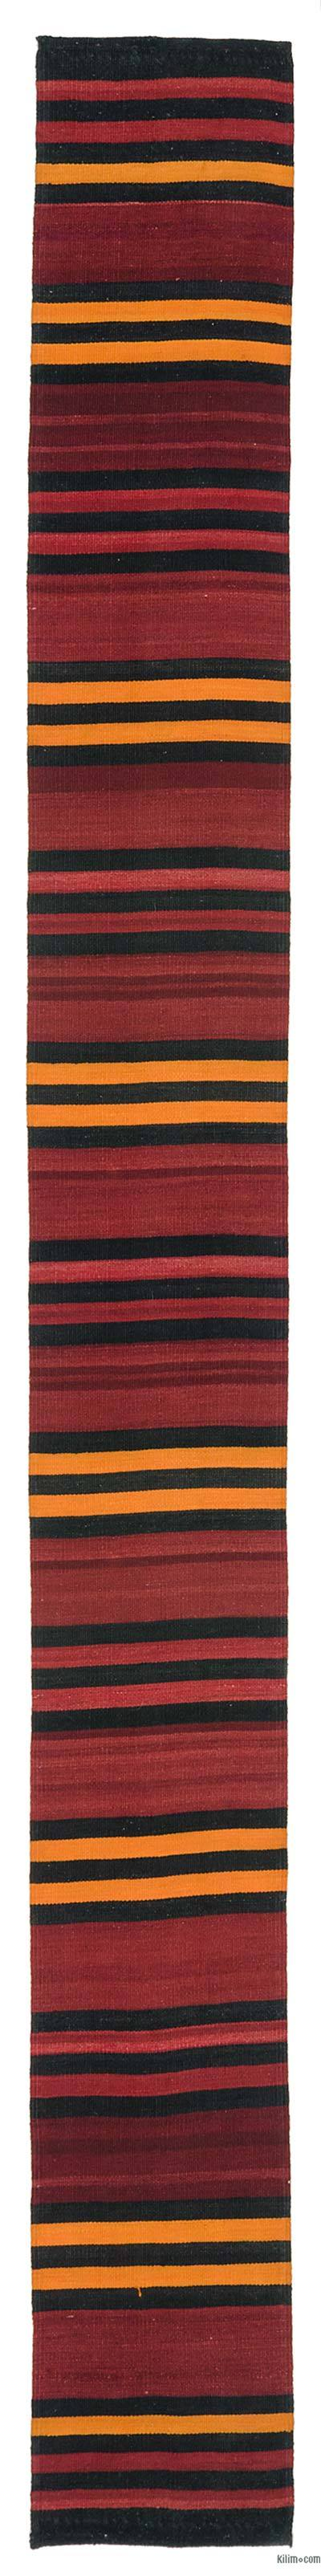 Red Vintage Turkish Kilim Rug  - 1'10'' x 15'4'' (22 in. x 184 in.)